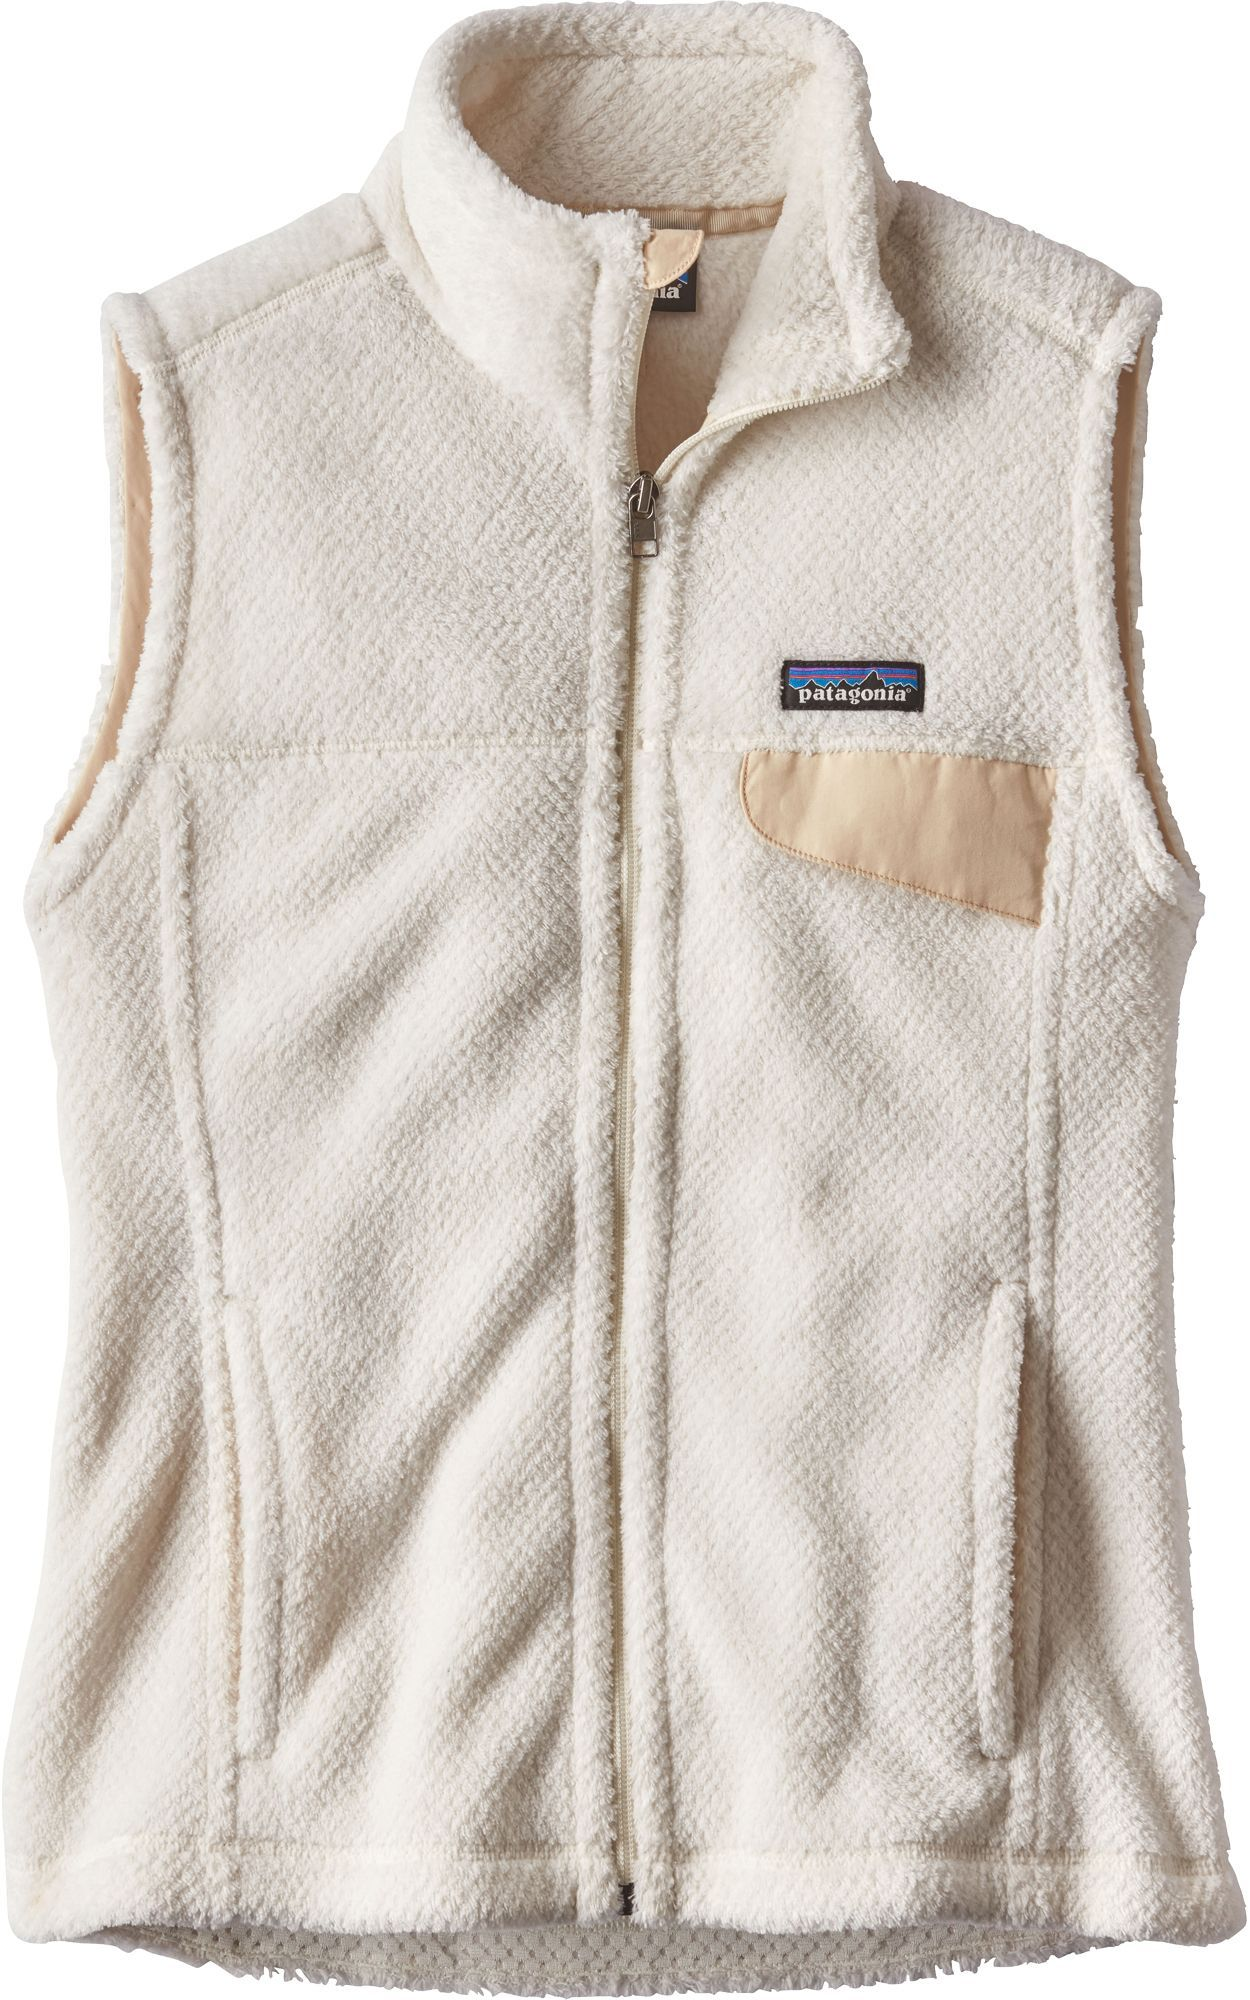 4ecc4c301bcb24 Patagonia Women s Re-Tool Fleece Vest